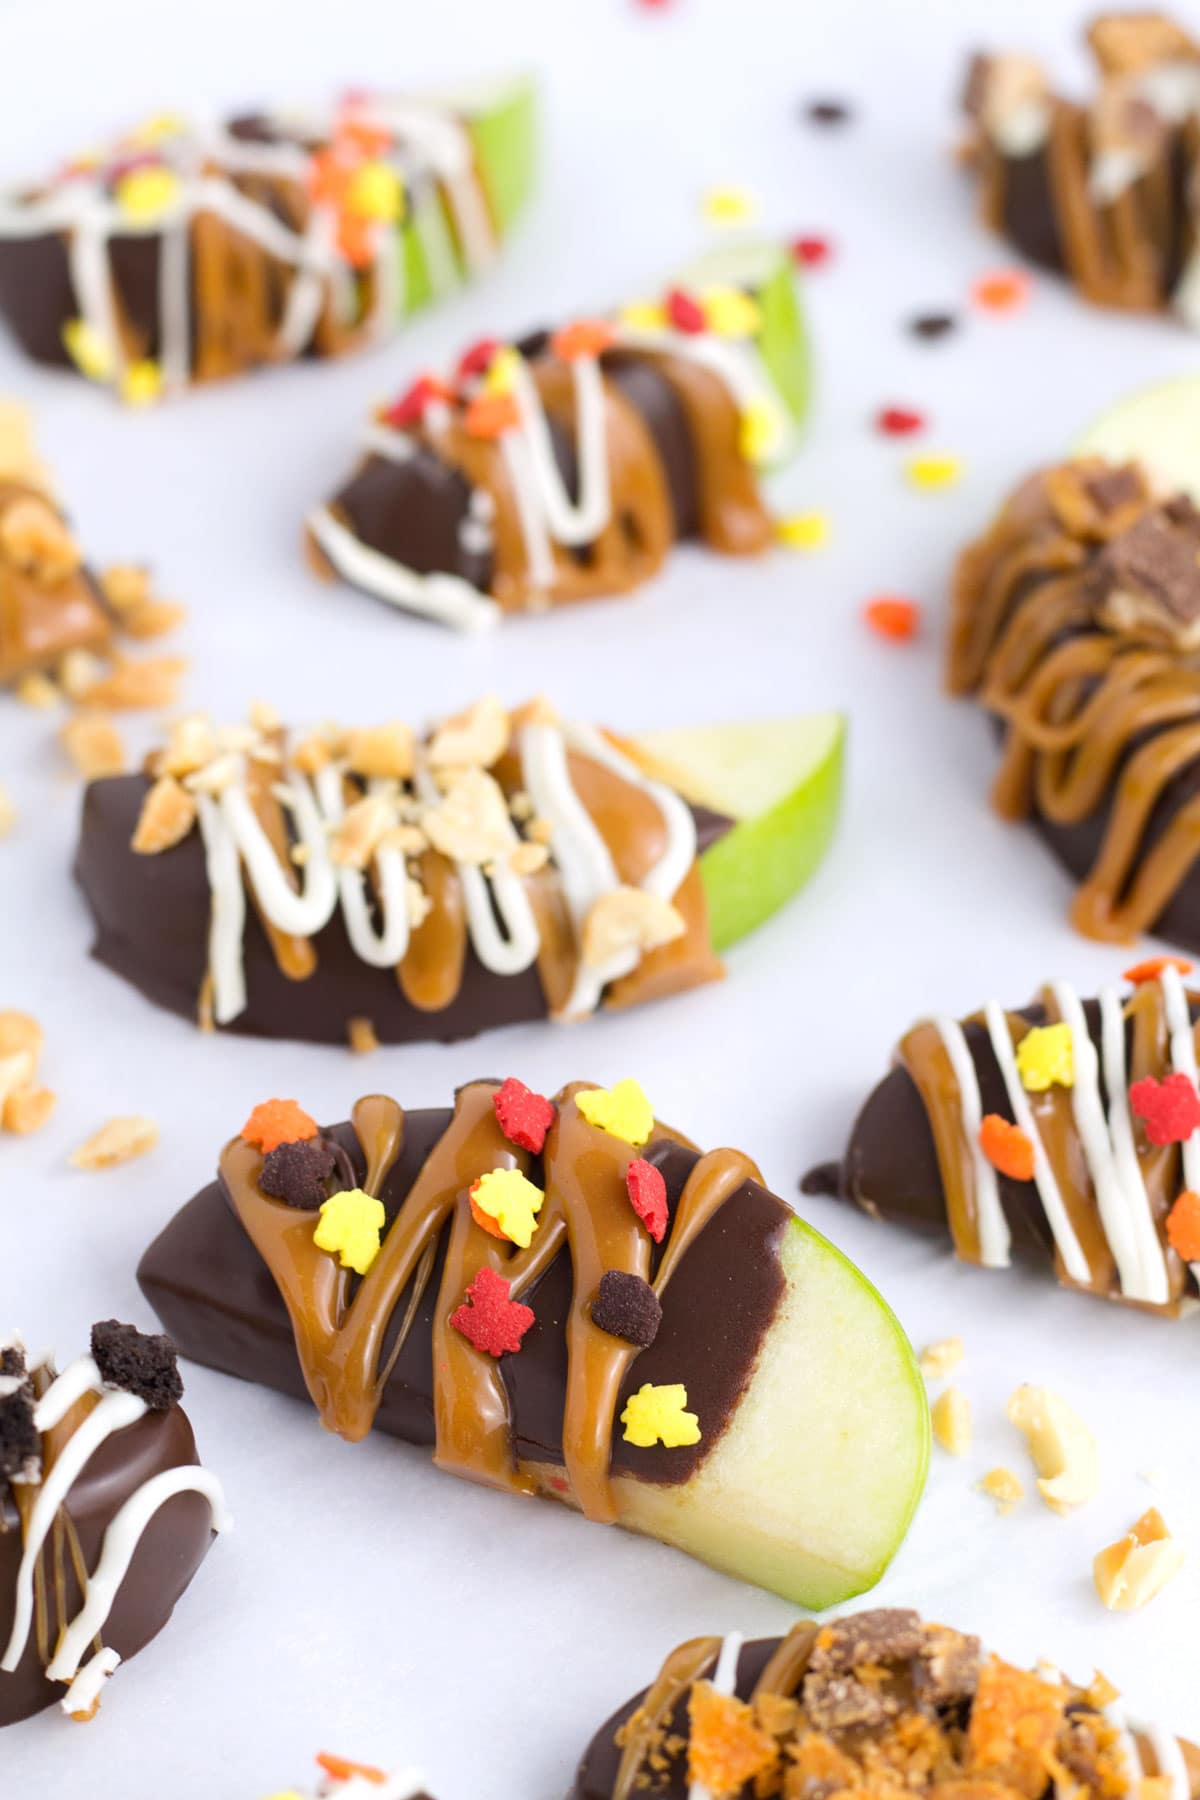 Chocolate covered apple slices with caramel, candy, and fall sprinkles.